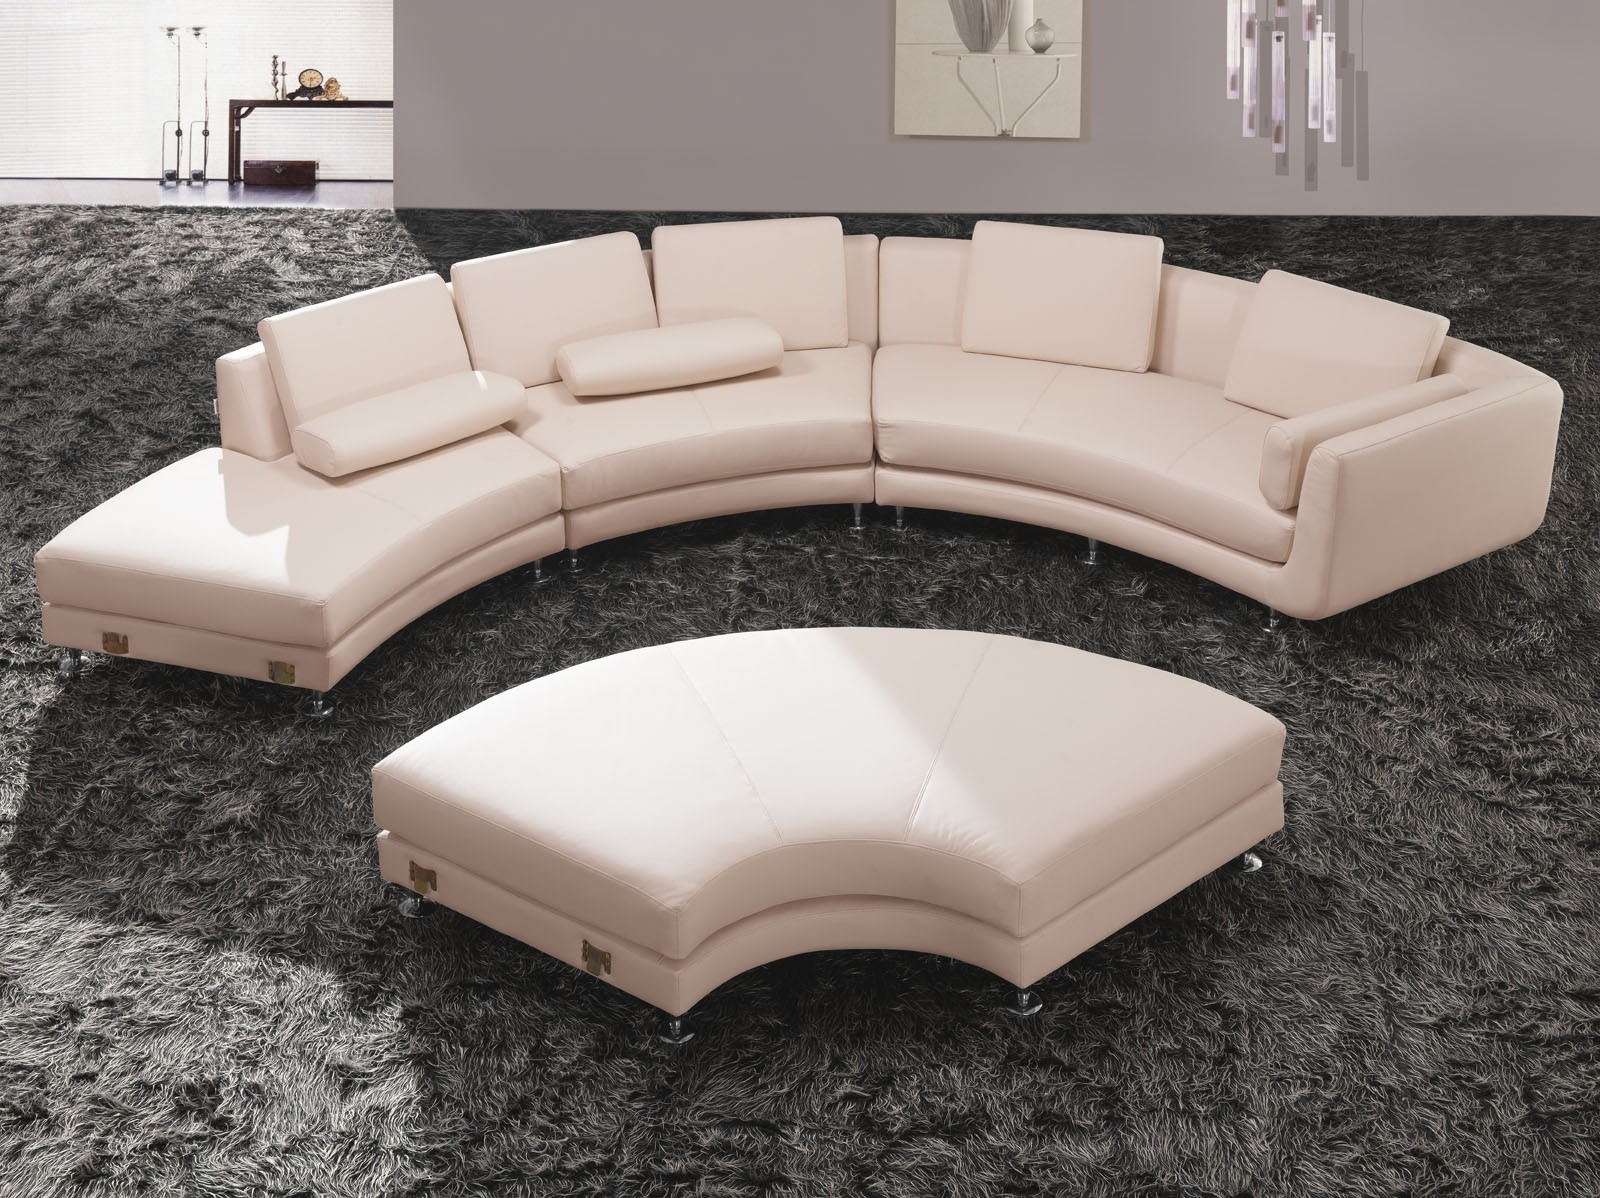 Sofa : Glamorous Round Sectional Sofa Bed Curved Leather Tufted Pertaining To Most Up To Date Round Sofas (View 17 of 20)